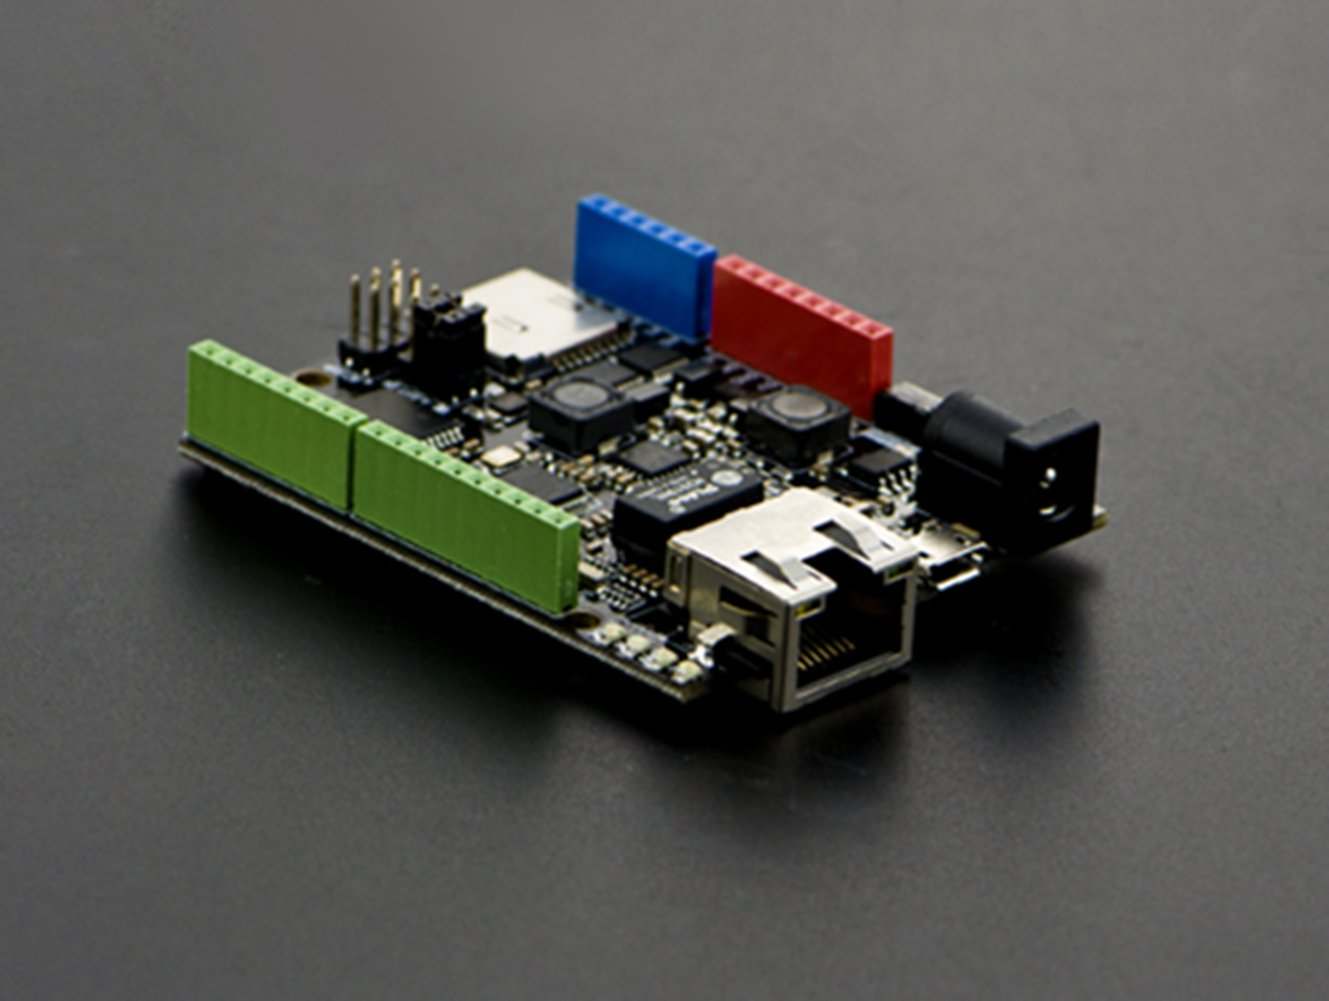 W5500 Ethernet With POE Control Board(Arduino Compatible)/W5500 Chip Is A Hardwired TCP/IP Embedded Ethernet Chip That Provides Easier Internet Connection To Embedded Systems